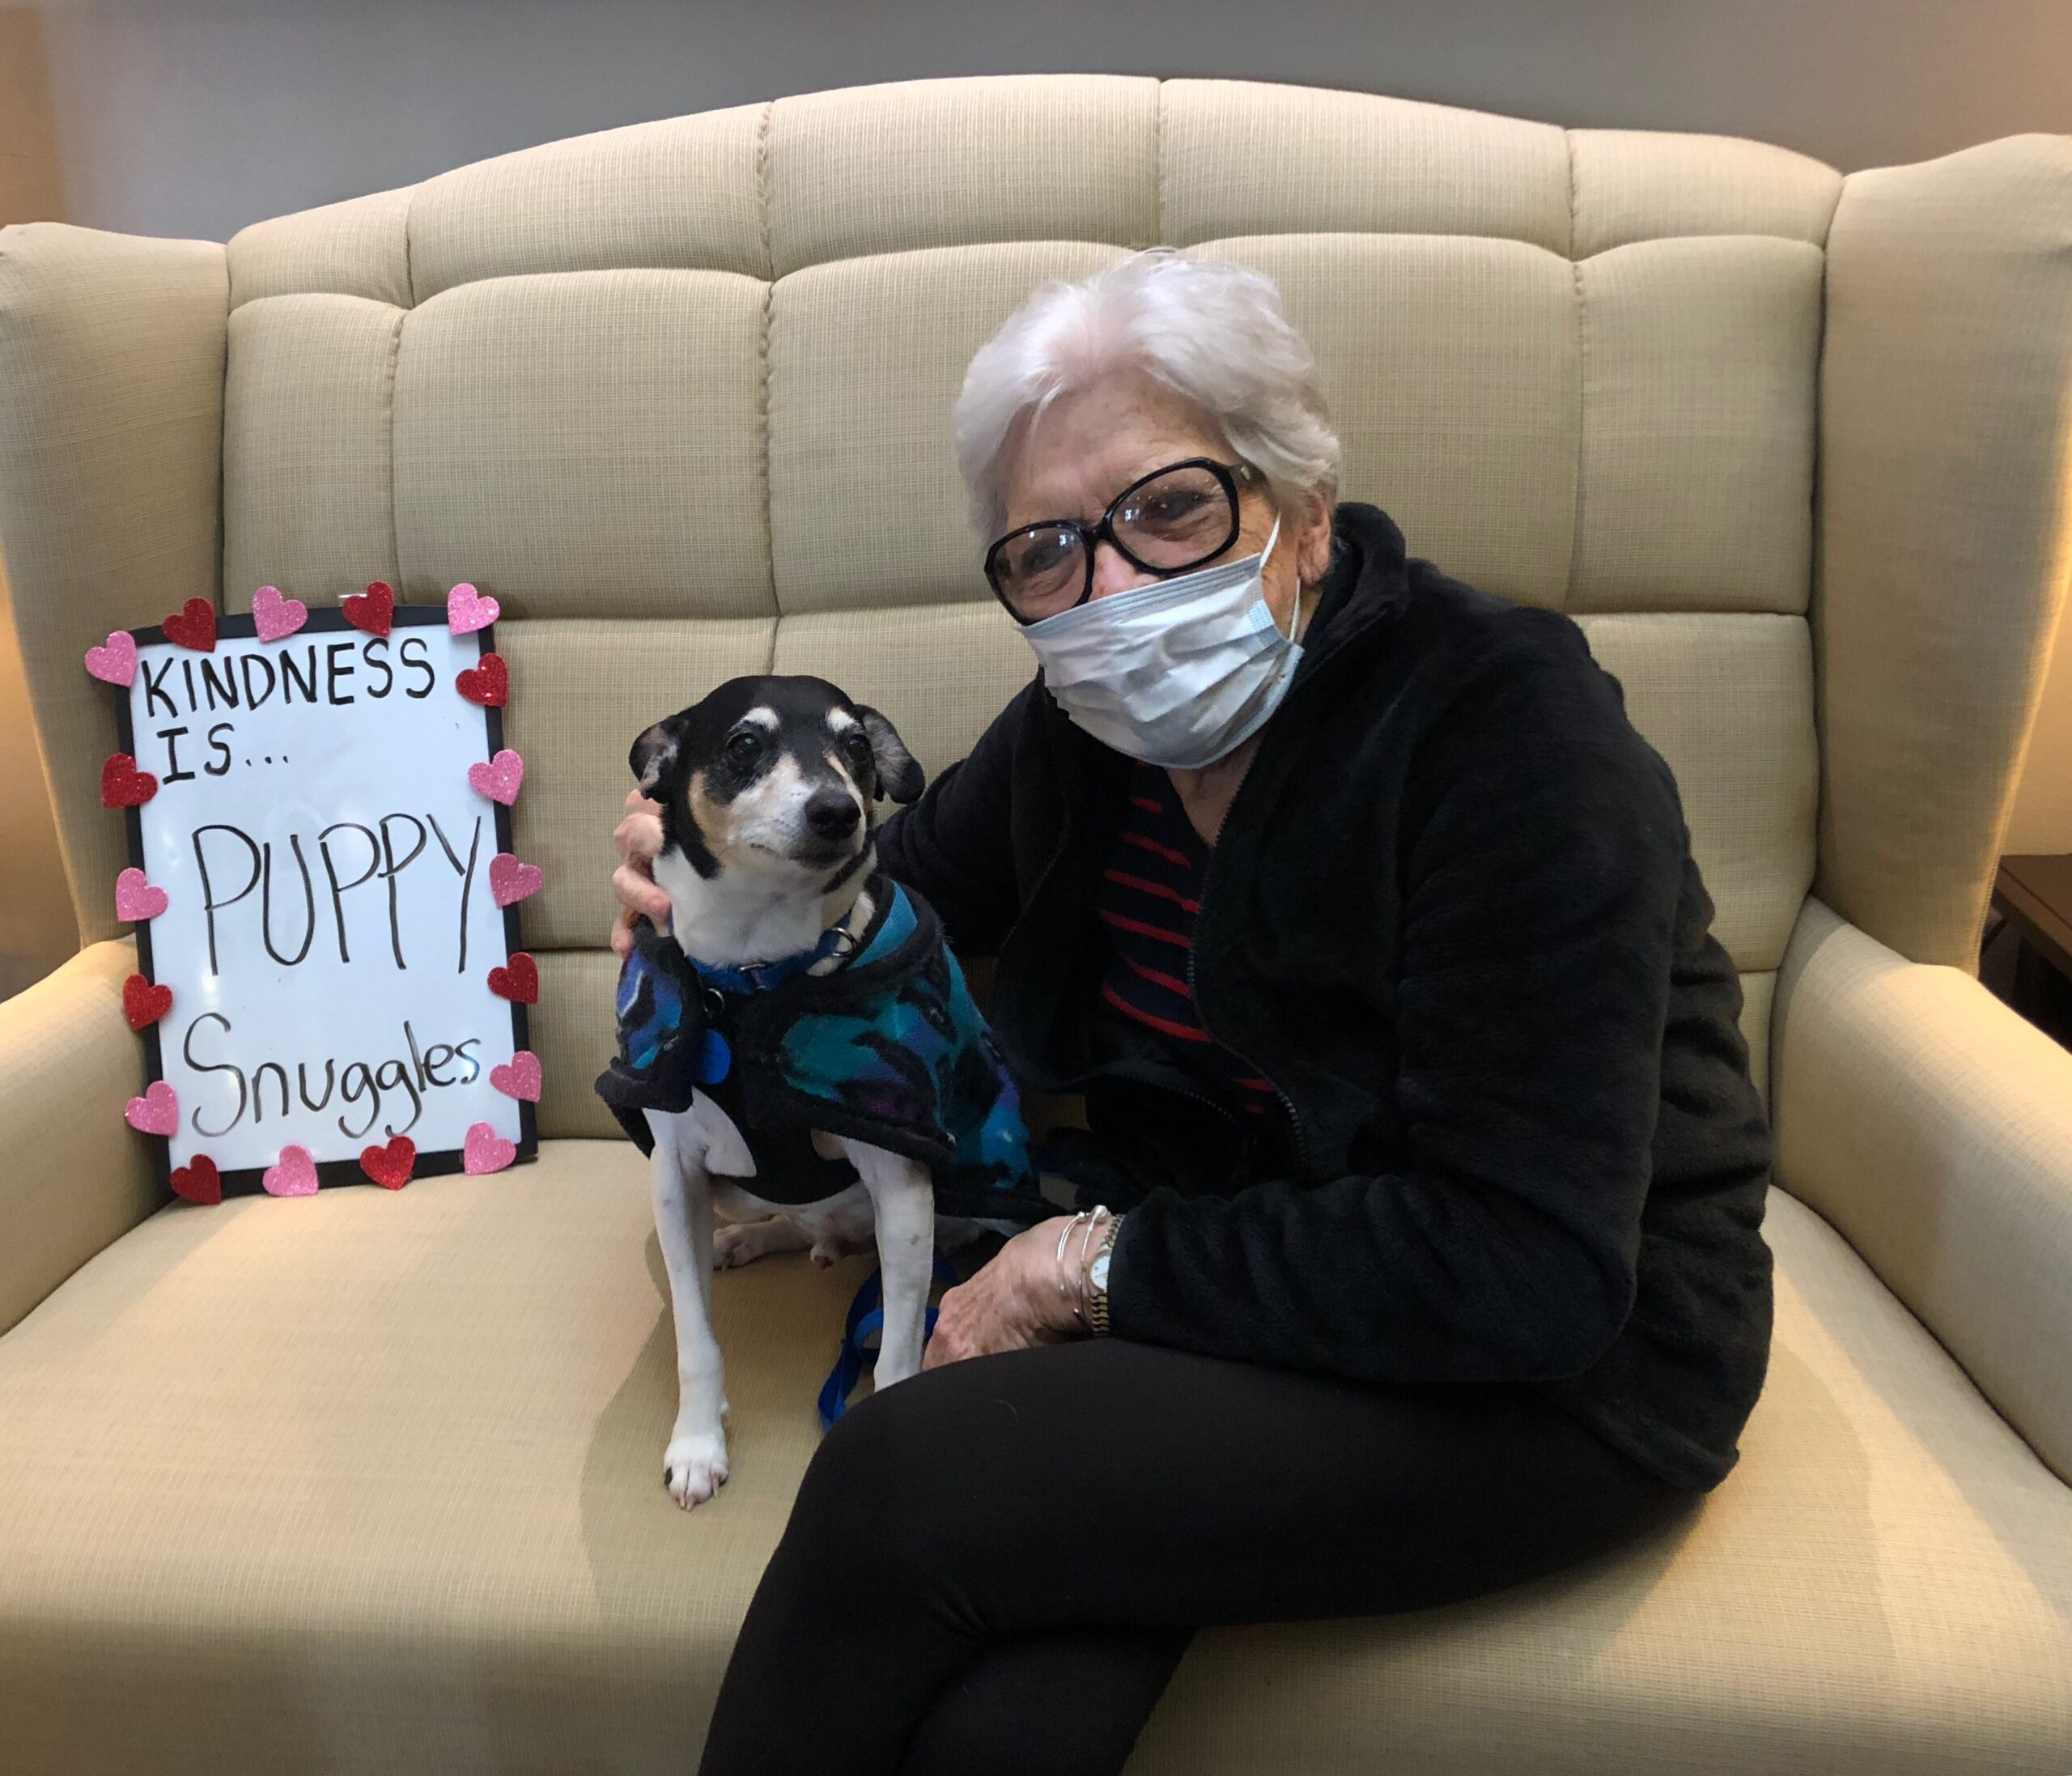 Random Acts of Kindness Day- In celebration of Random Acts of Kindness Day residents and staff told what kindness meant to them- For Marilyn it was the Puppy Love, Snuggles and Kisses!